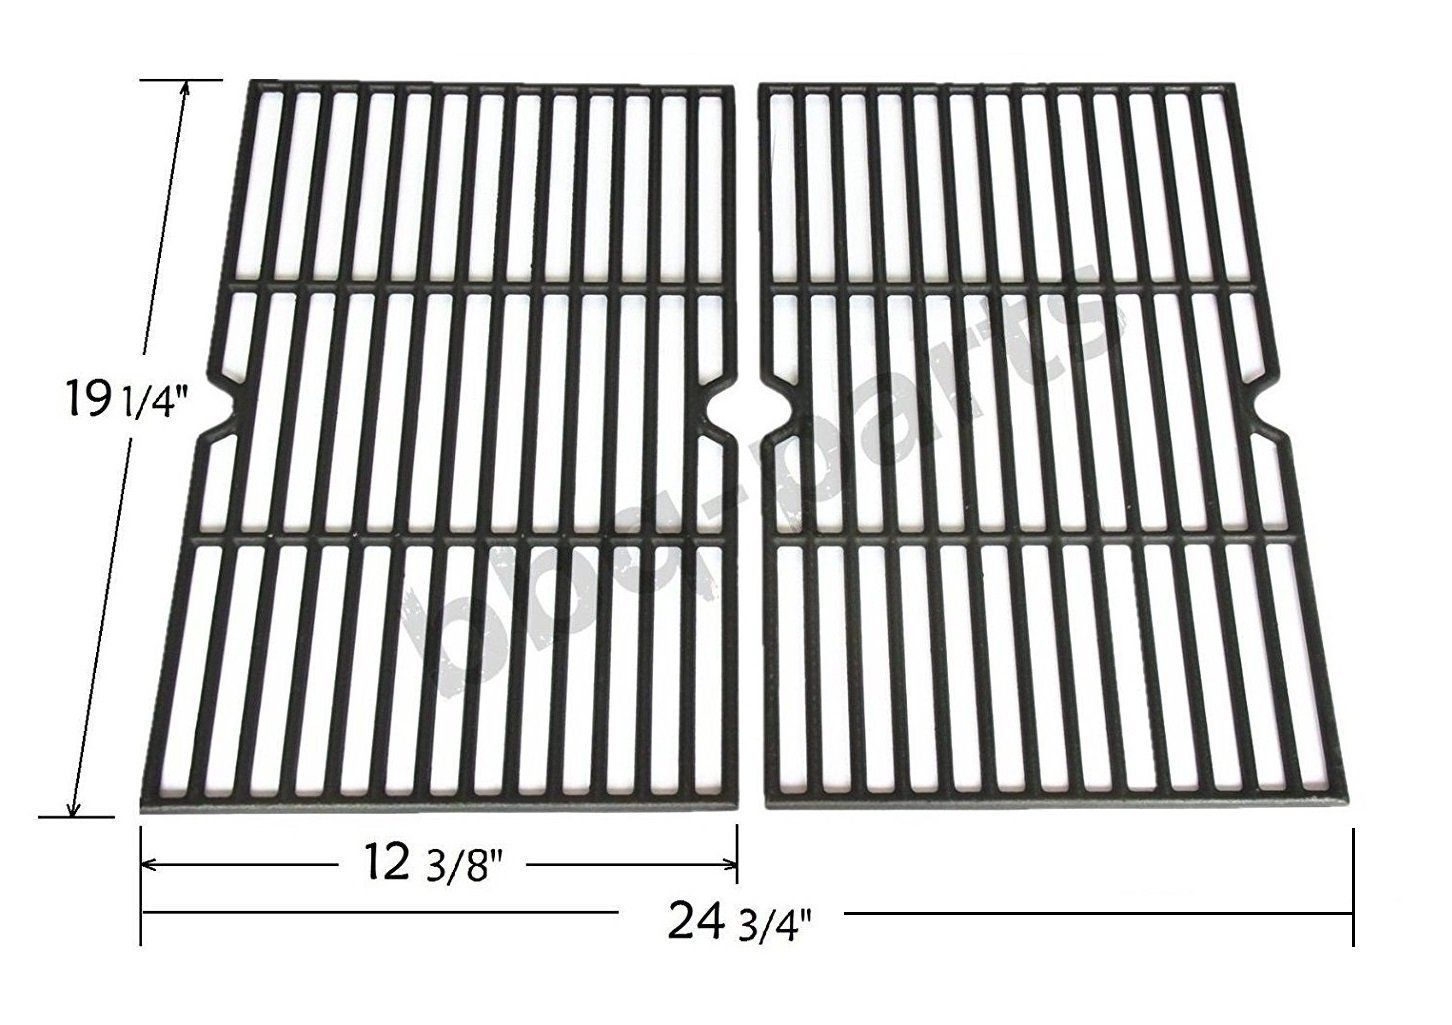 Pcb152 Universal Gas Grill Grate Cast Iron Cooking Grid Replacement Sold As A Set Of 2 Cast Iron Cooking Gas Grill Grill Grates